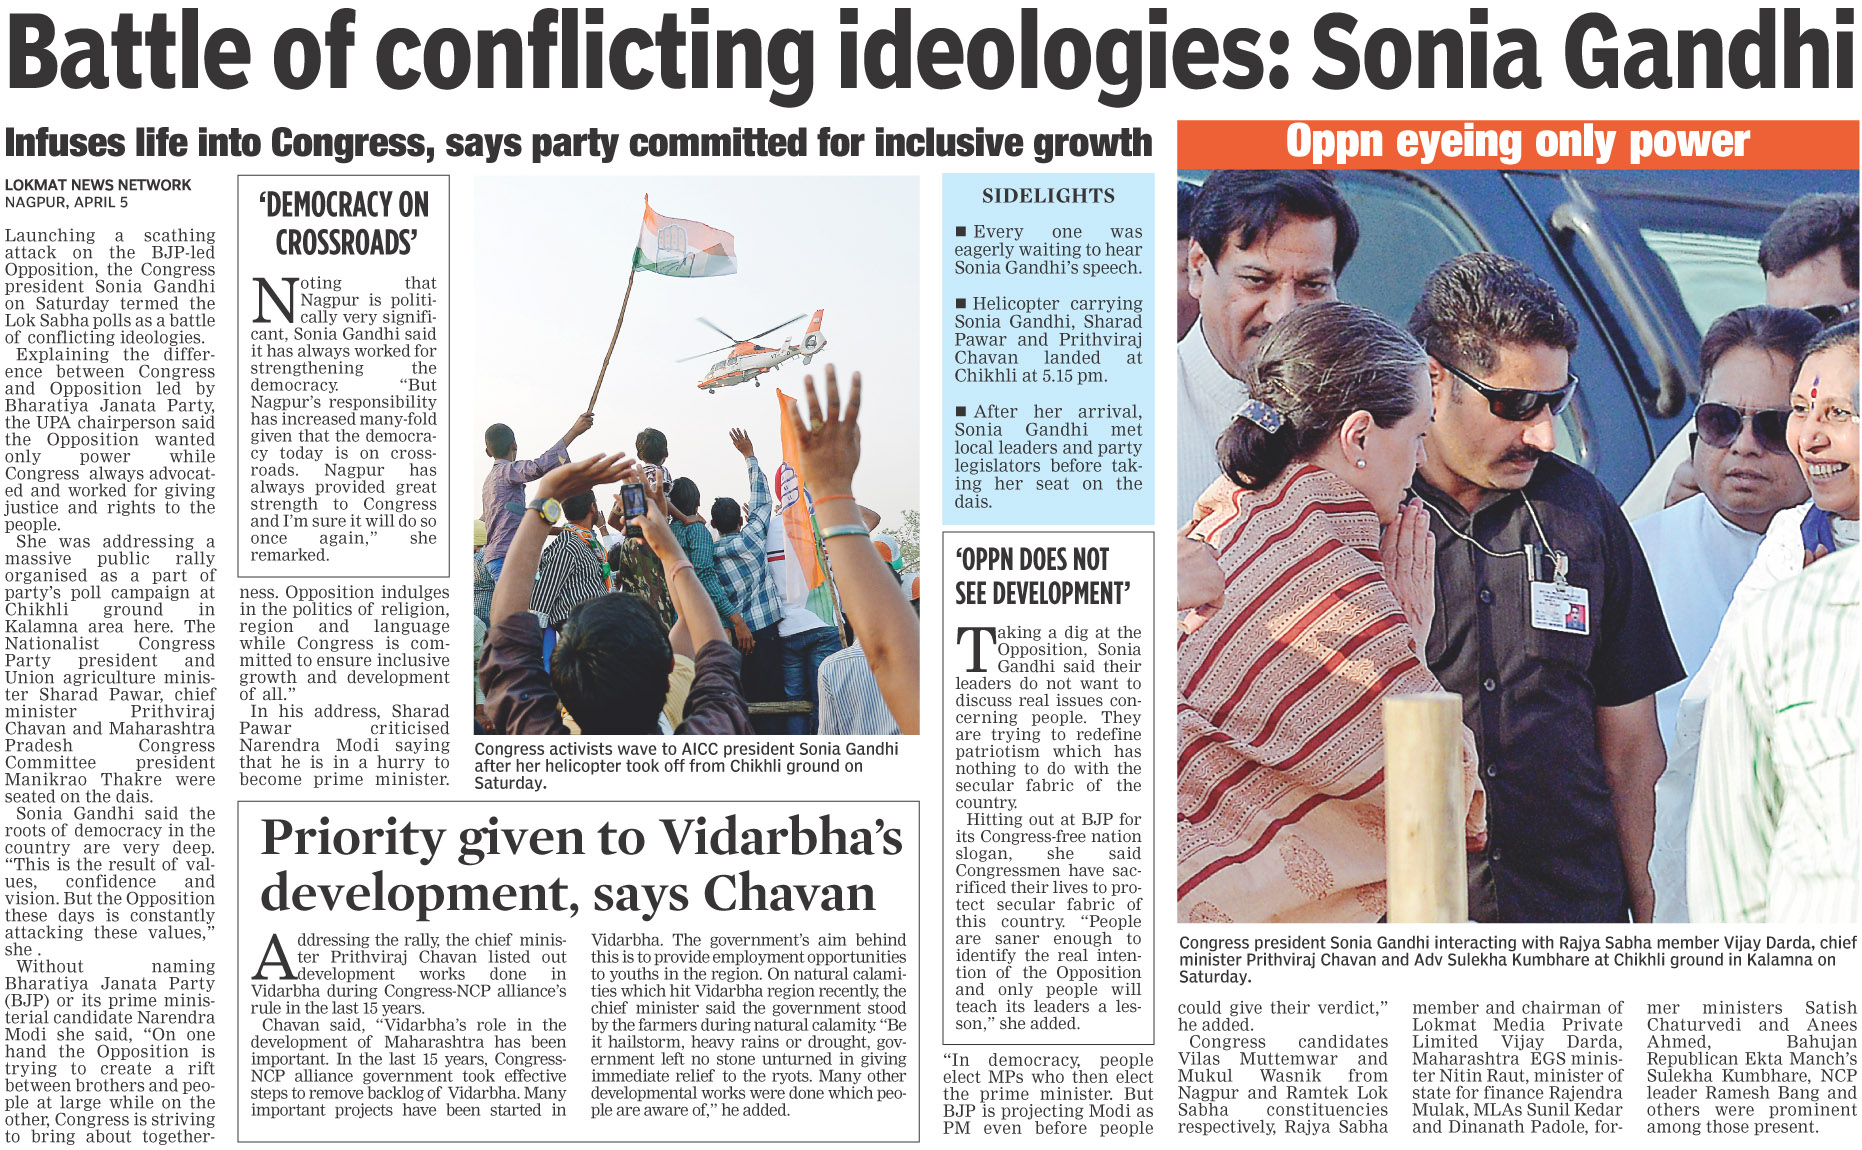 Battle of conflicting ideologies: Sonia Gandhi